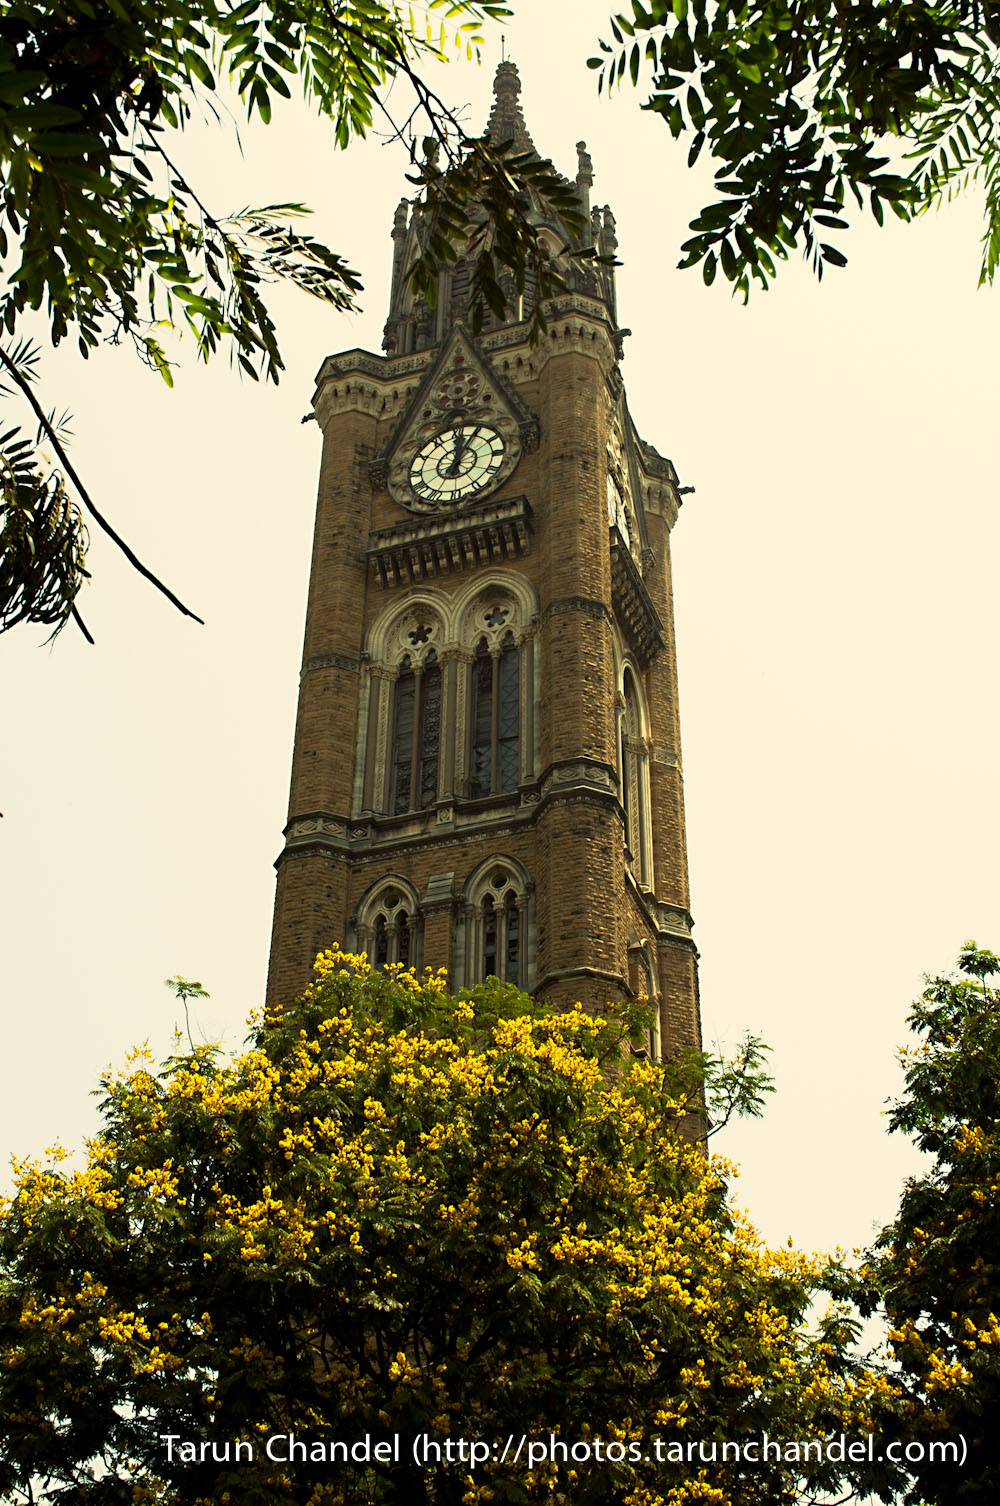 Mumbai University Tower Clock, Tarun Chandel Photoblog